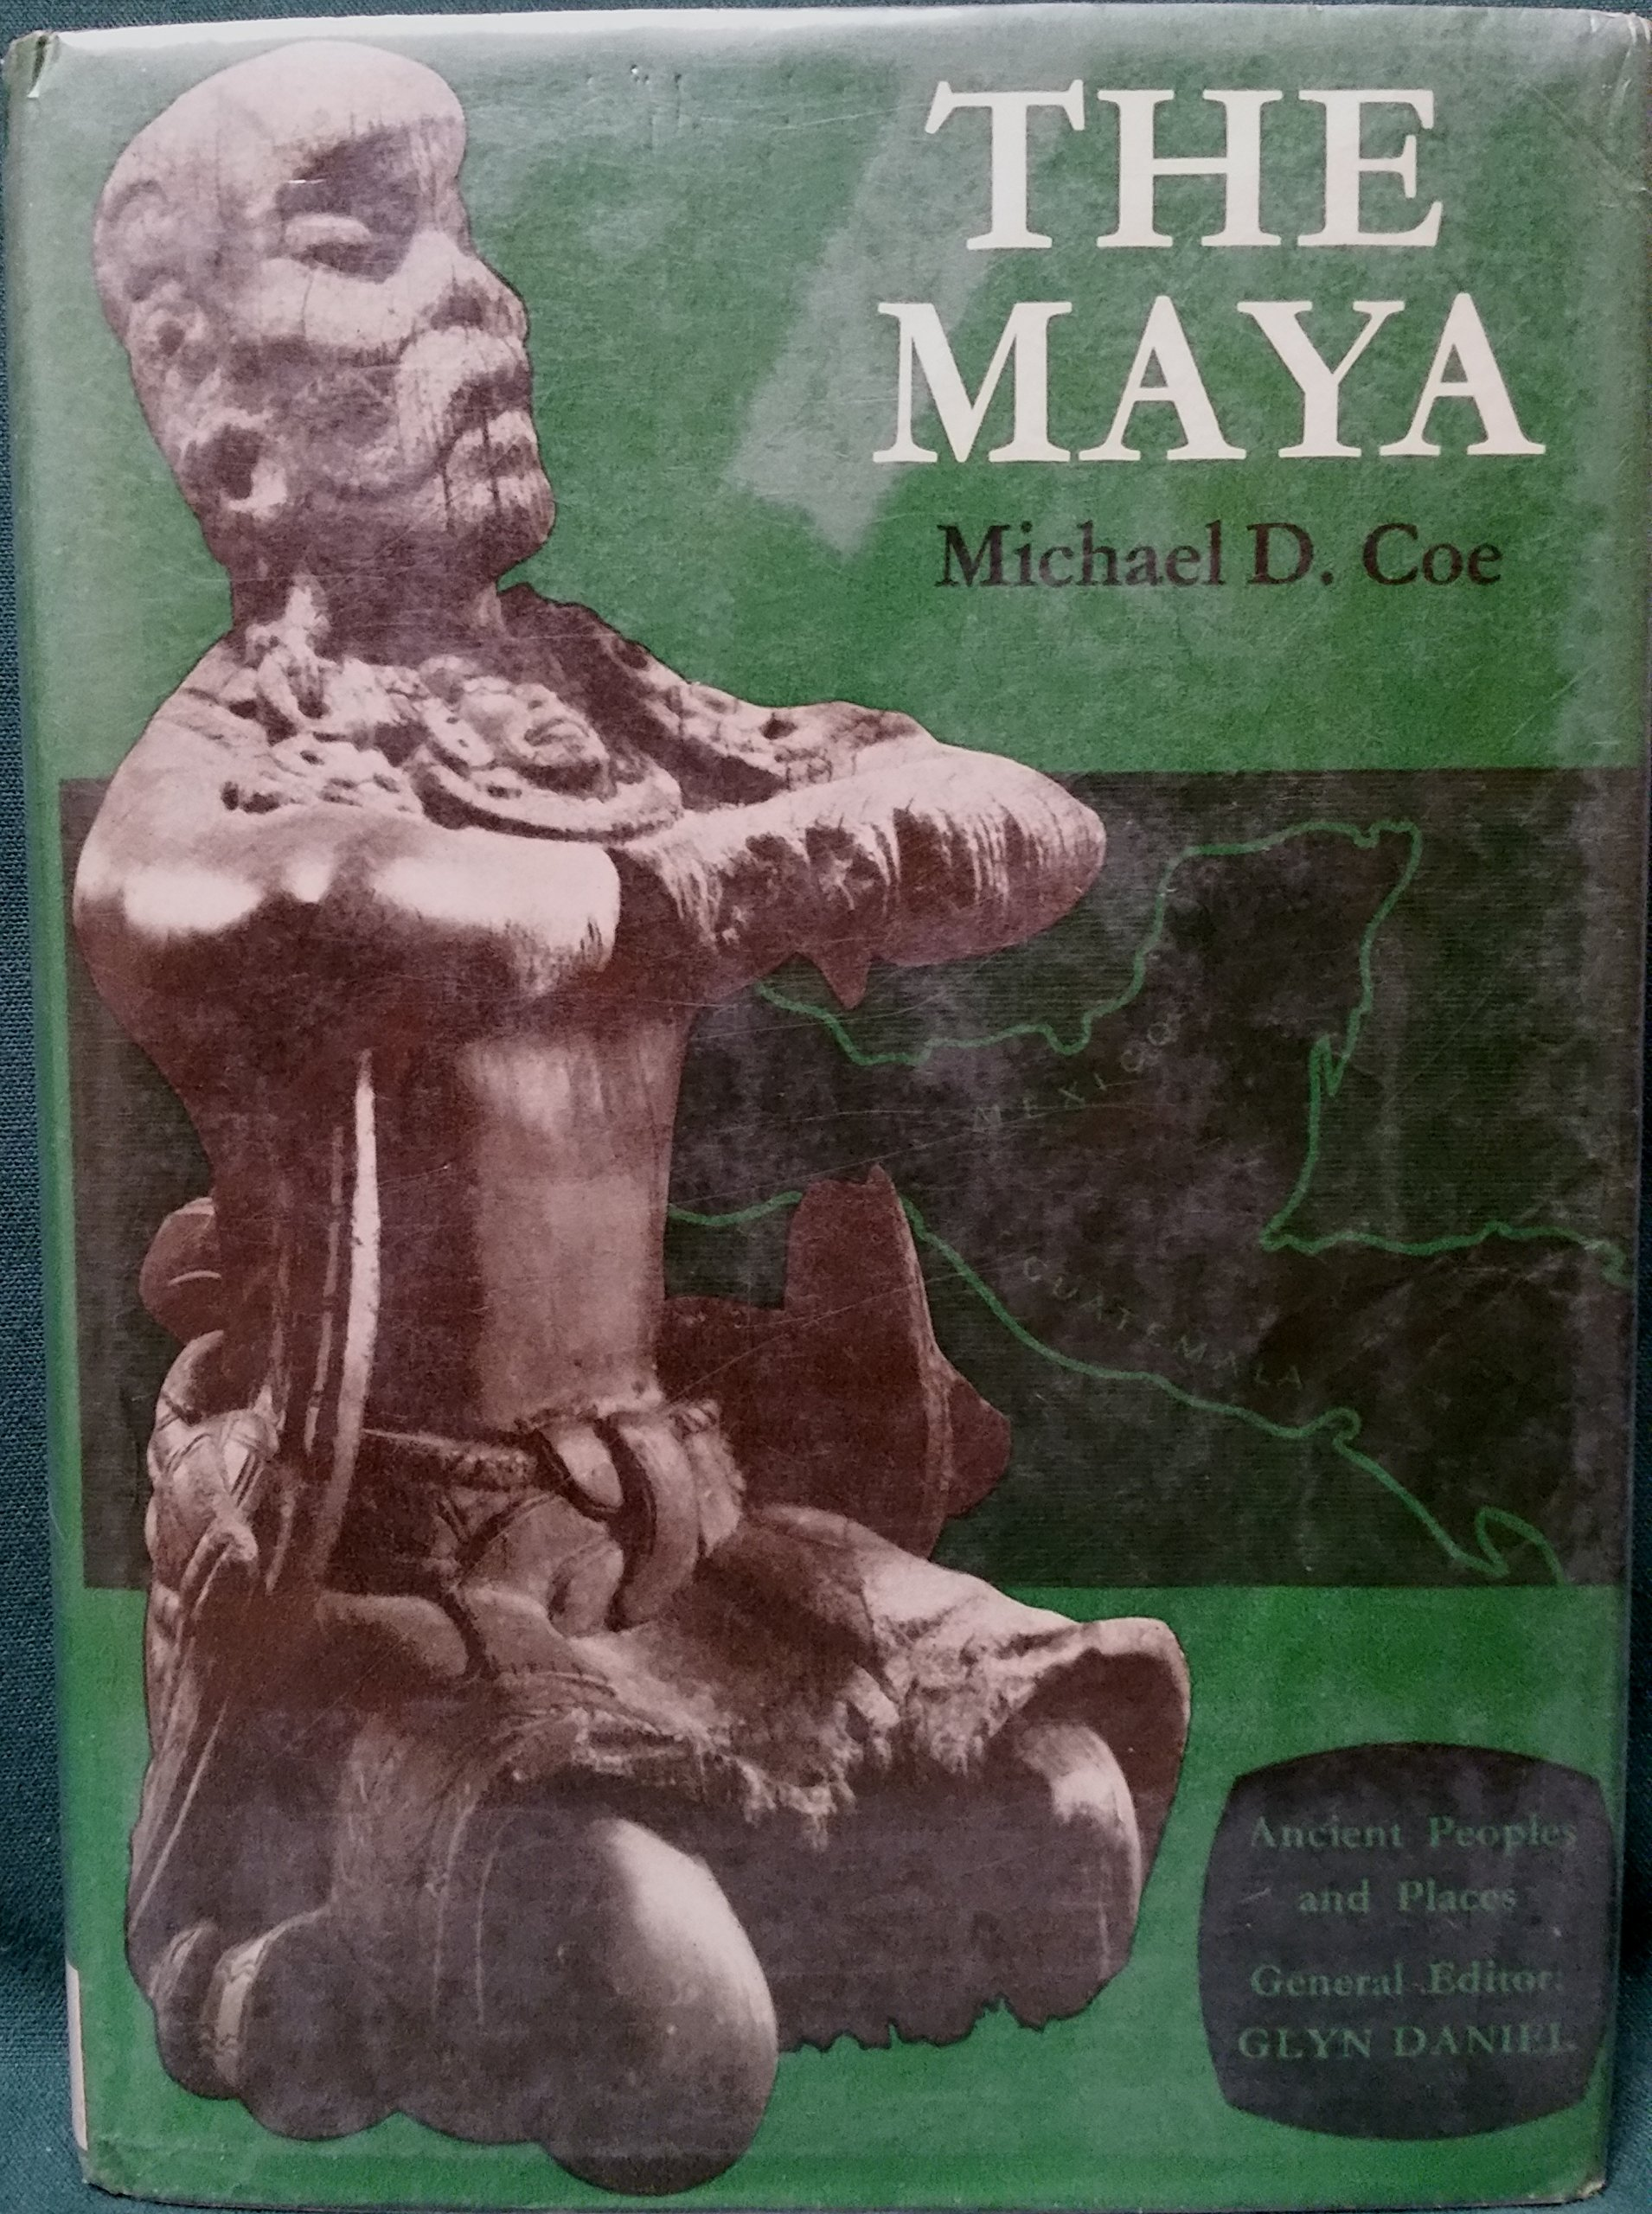 THE MAYA  ANCIENT PEOPLES AND PLACES SERIES Volume 52